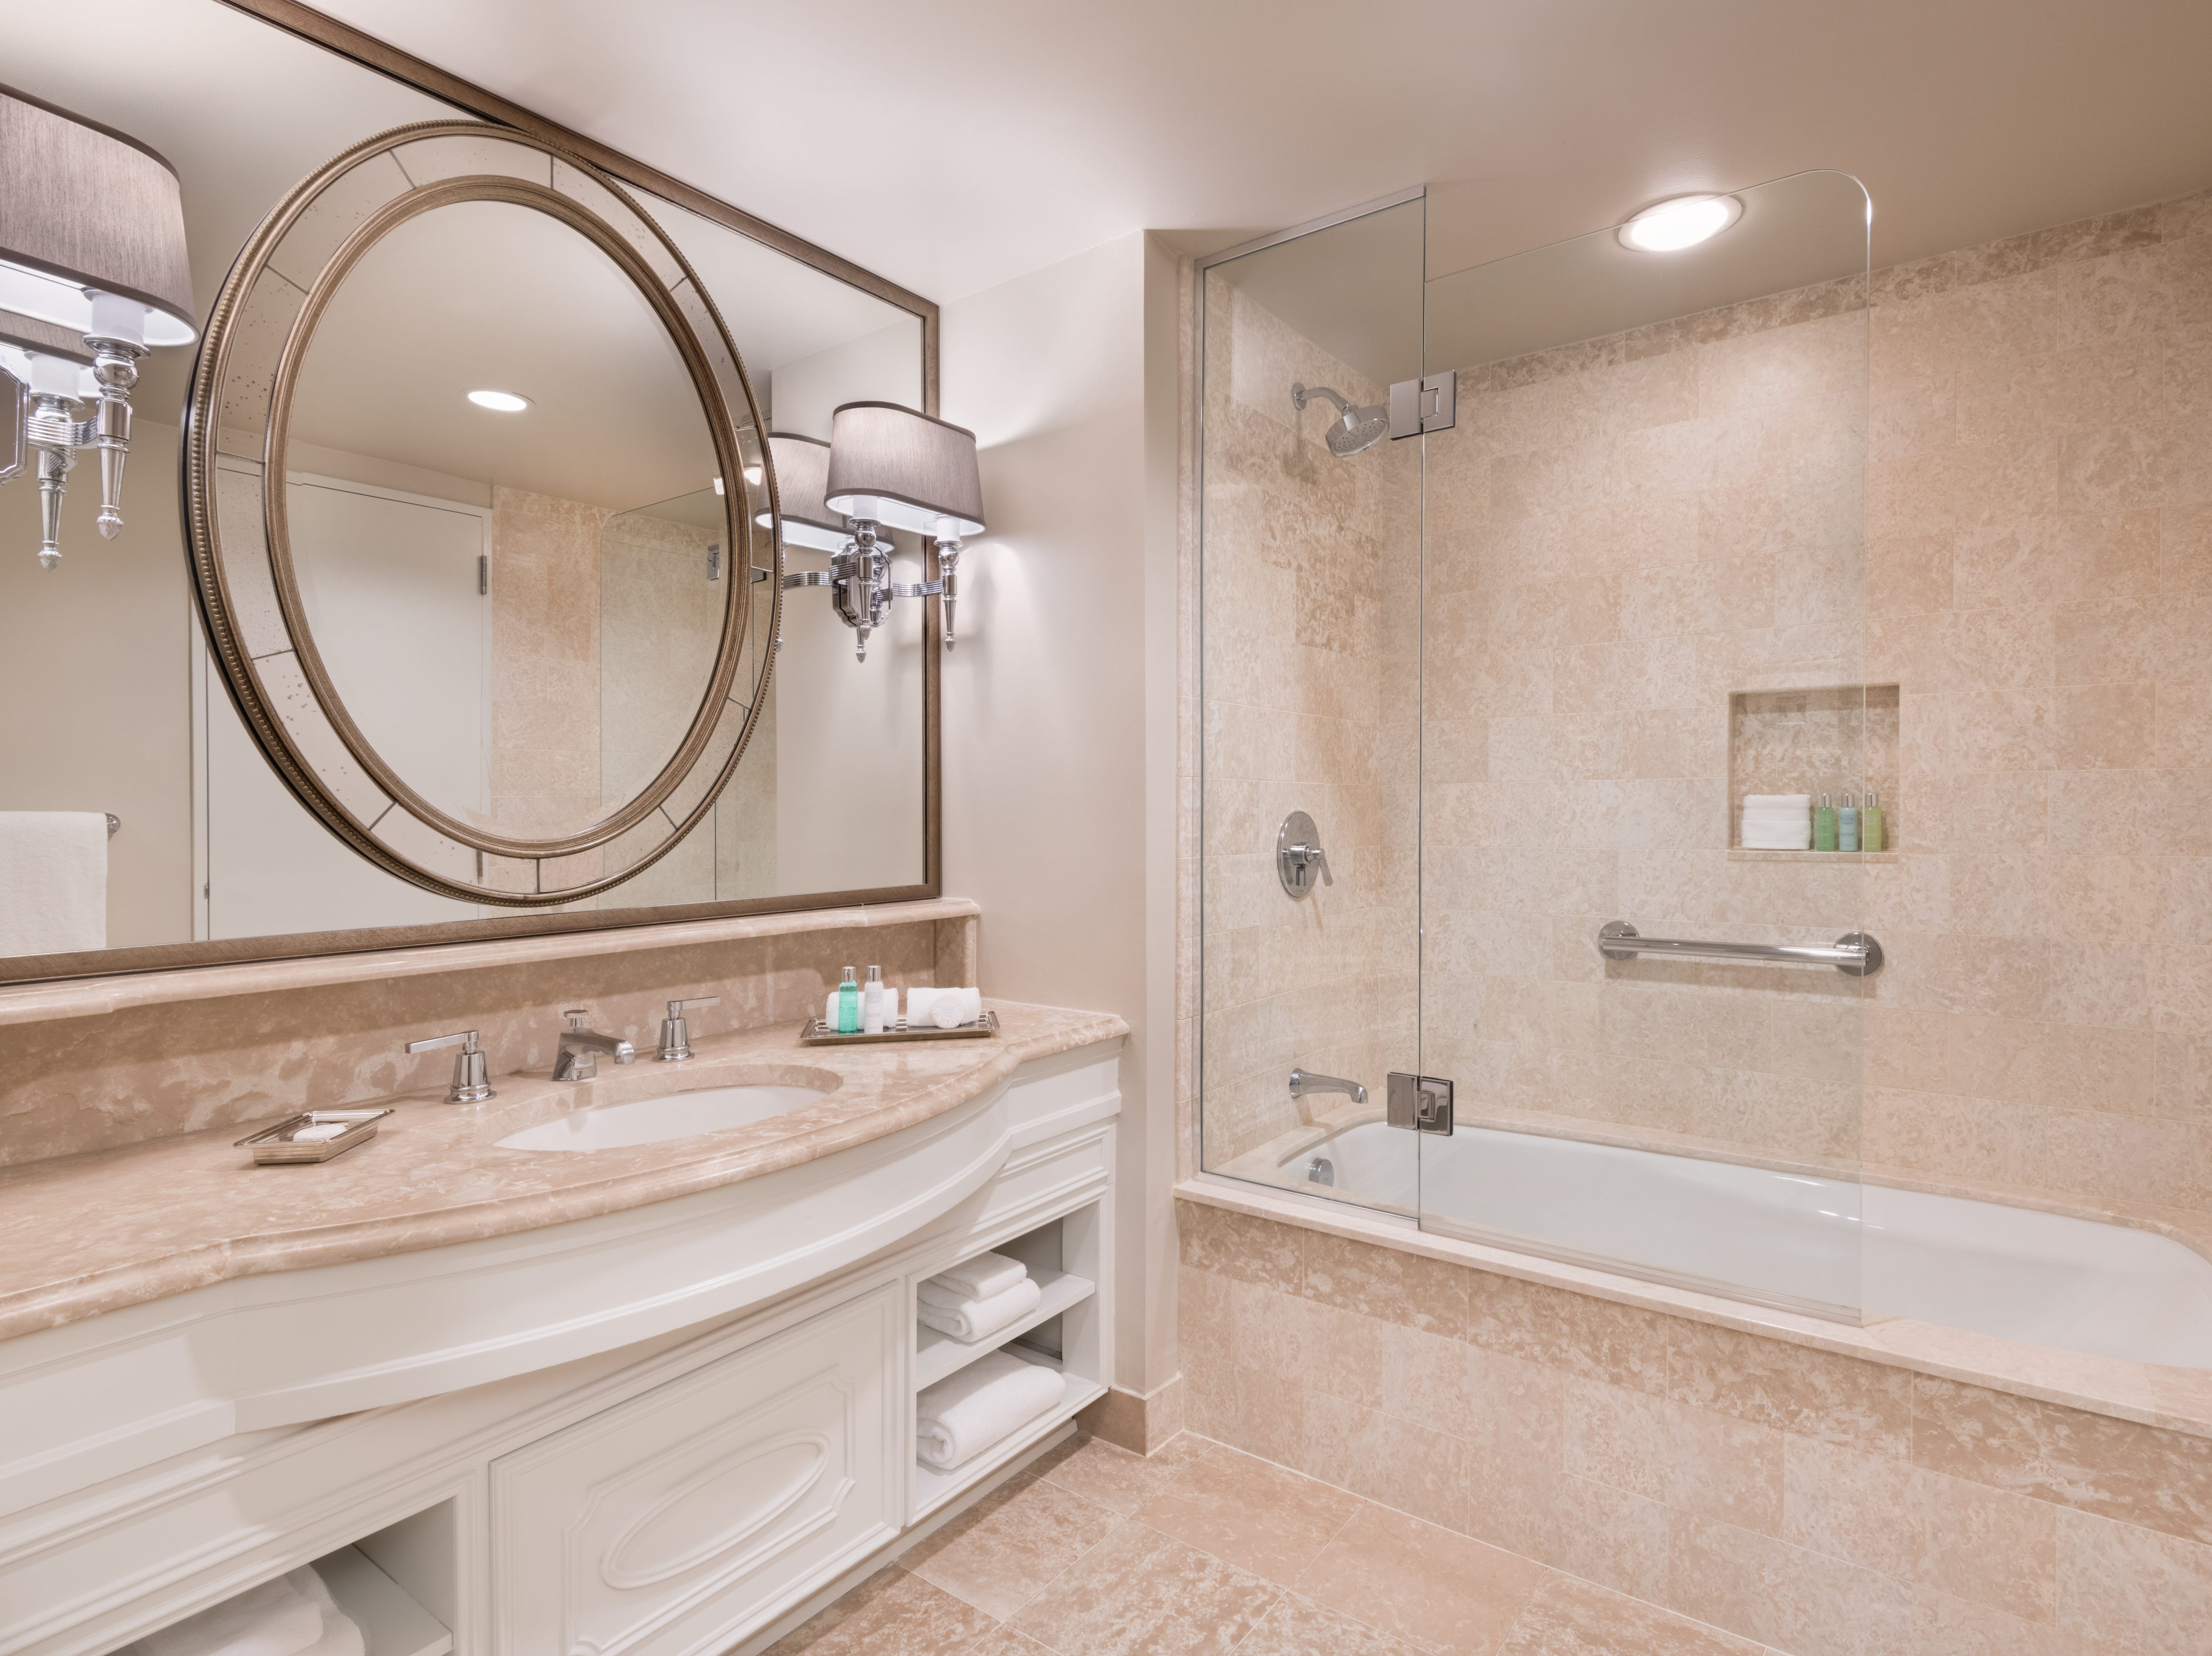 Rooms at the renovated Windsor Court Hotel in New Orleans have new bathrooms, some with bathtubs.